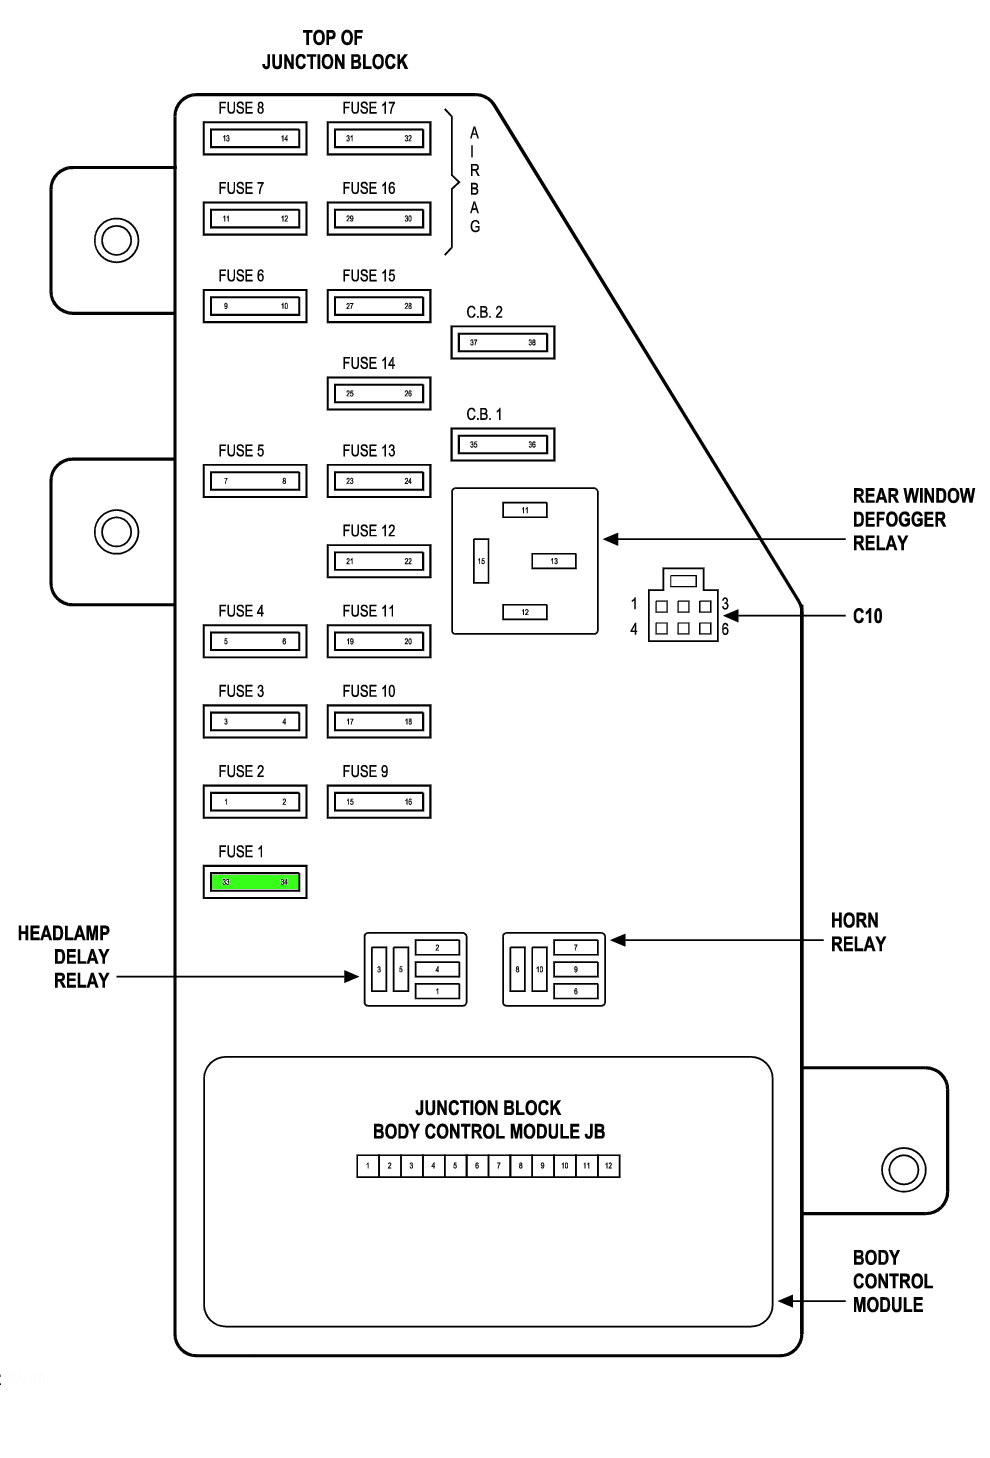 [DIAGRAM_3US]  2005 Chrysler Sebring Fuse Box Diagram | Wiring Diagram | 02 Sebring Fuse Diagram |  | Wiring Diagram - Autoscout24